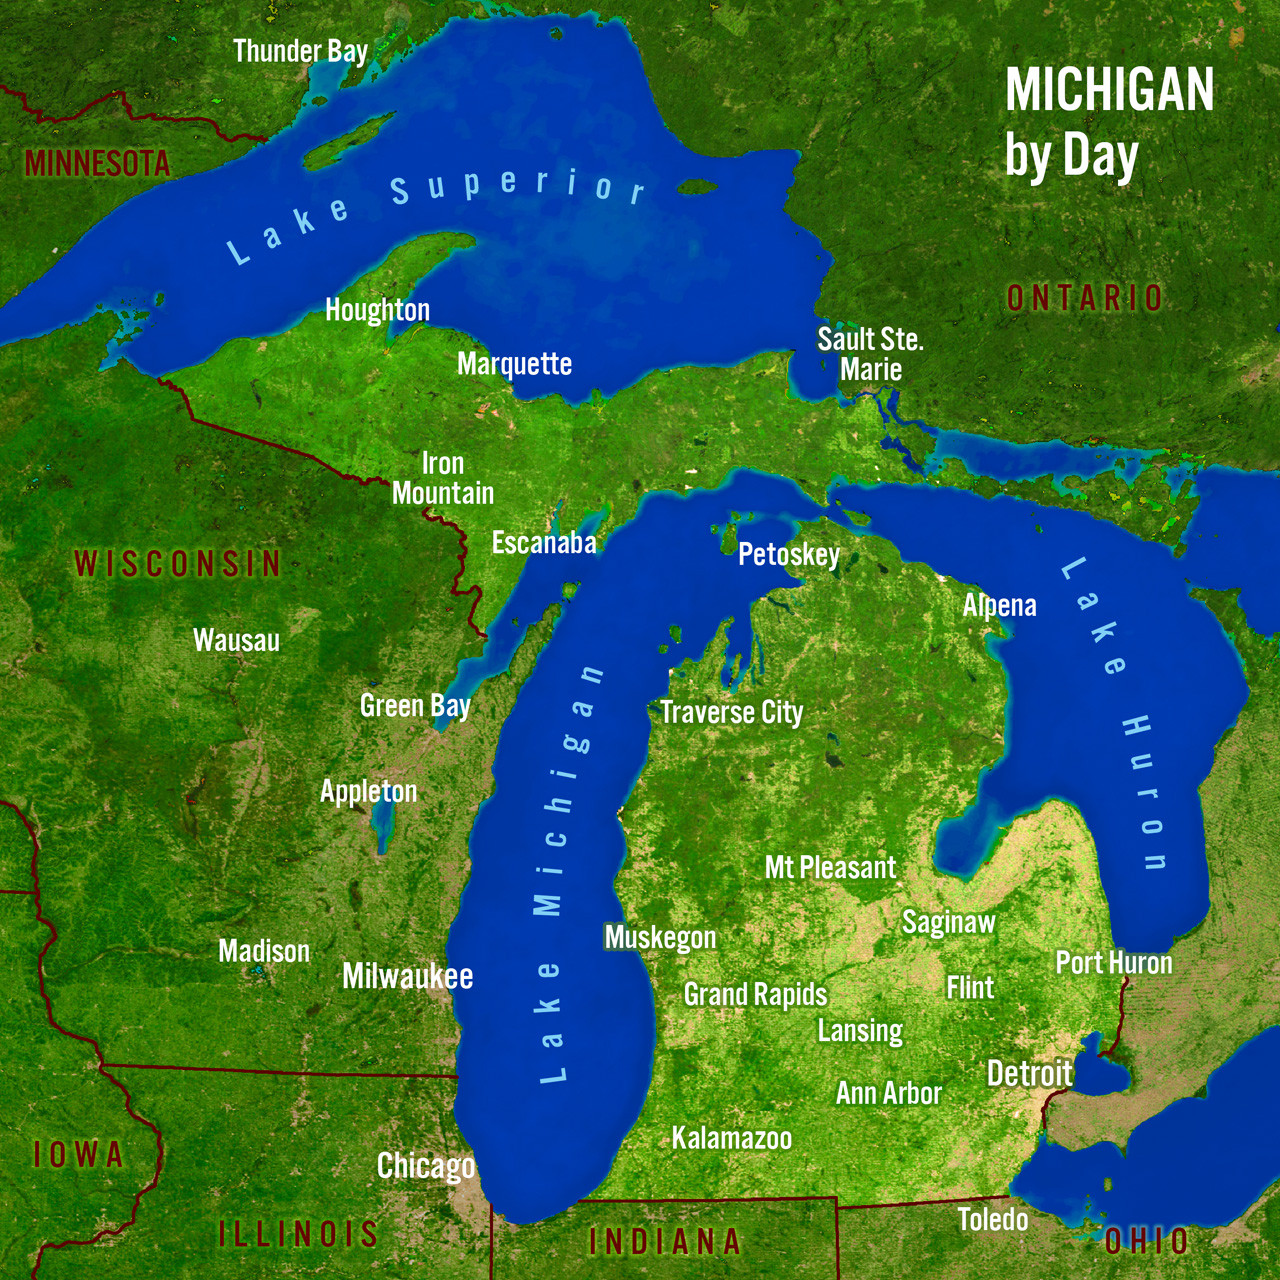 Michigan Day Night Map Maxi Card - Authentic Cards, Inc. on